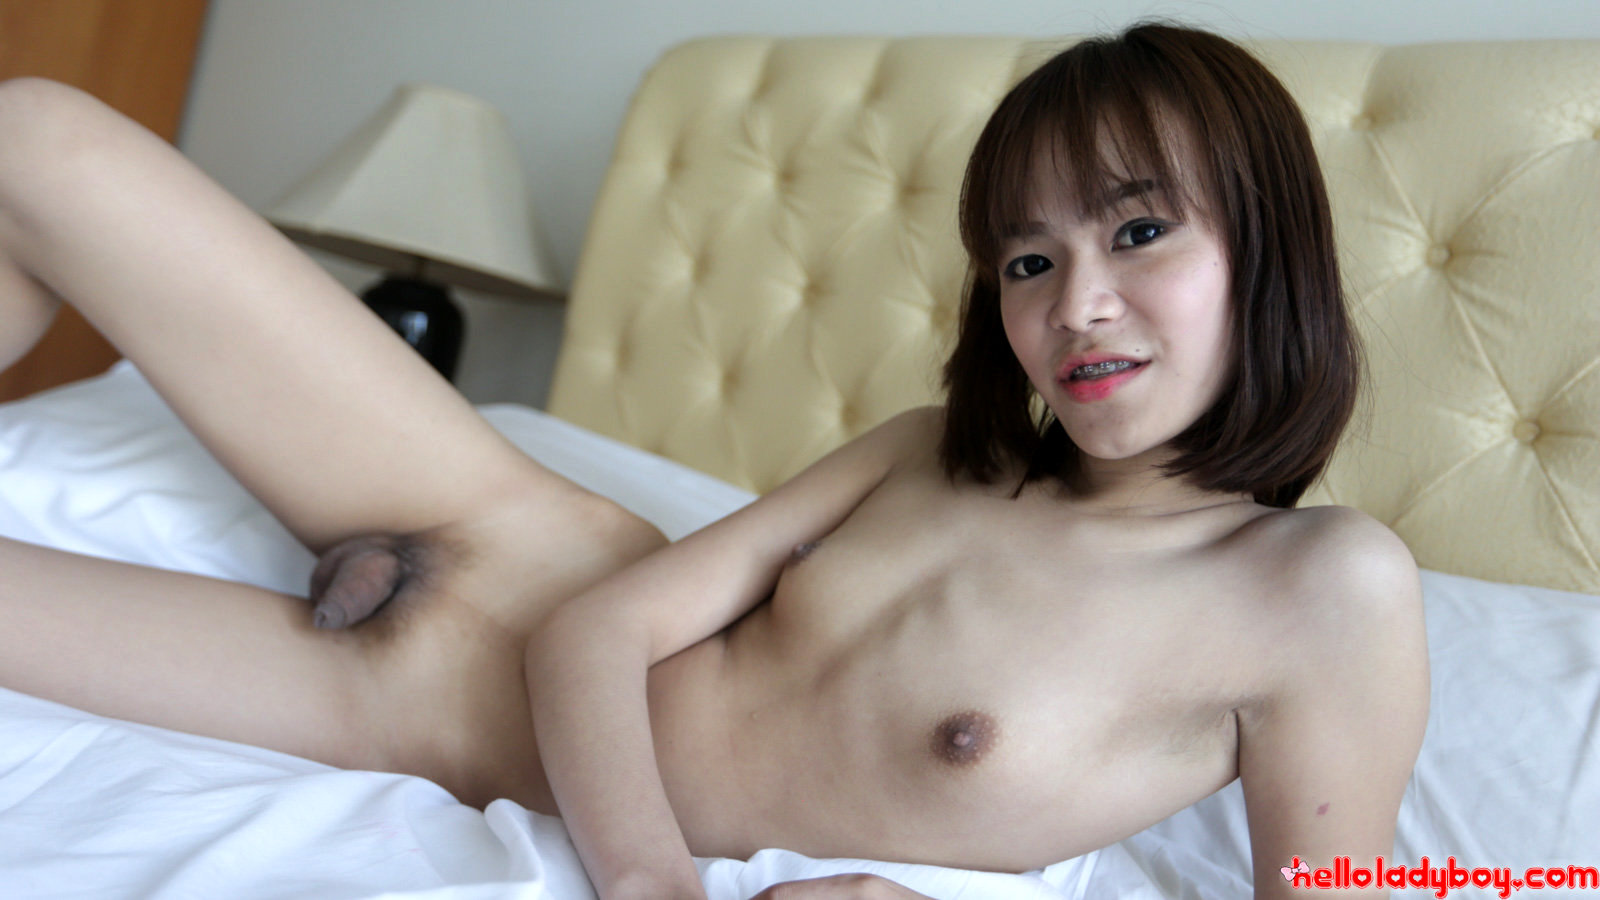 19 Year Old Girlie Asian Ladyboy With Tiny Boobs Gets A Facial